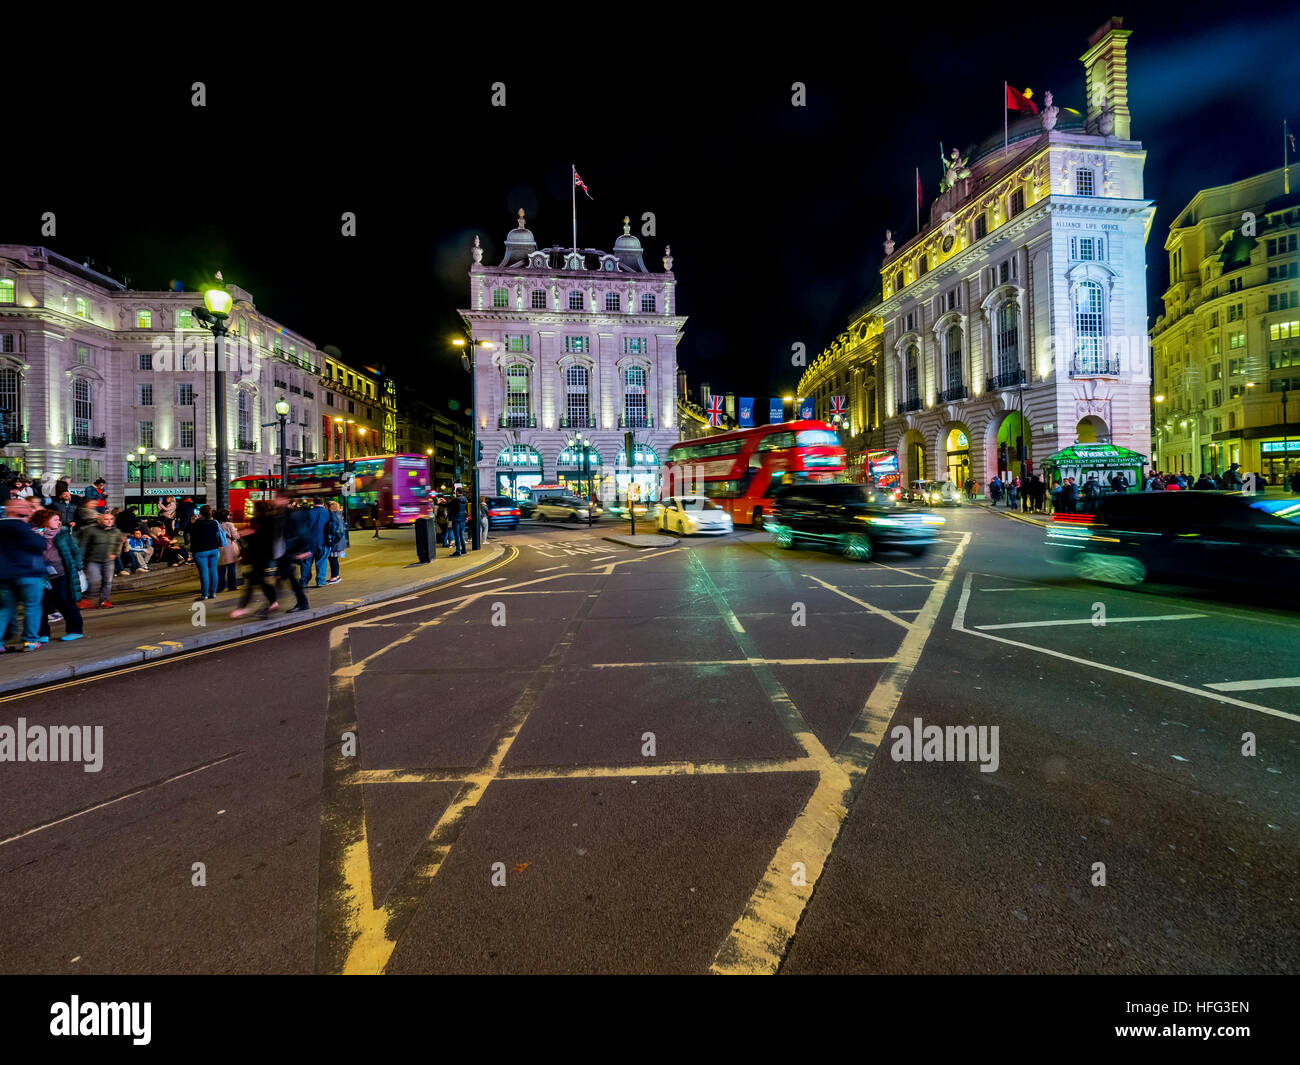 Traffic, Piccadilly Circus, night, London, England, United Kingdom - Stock Image